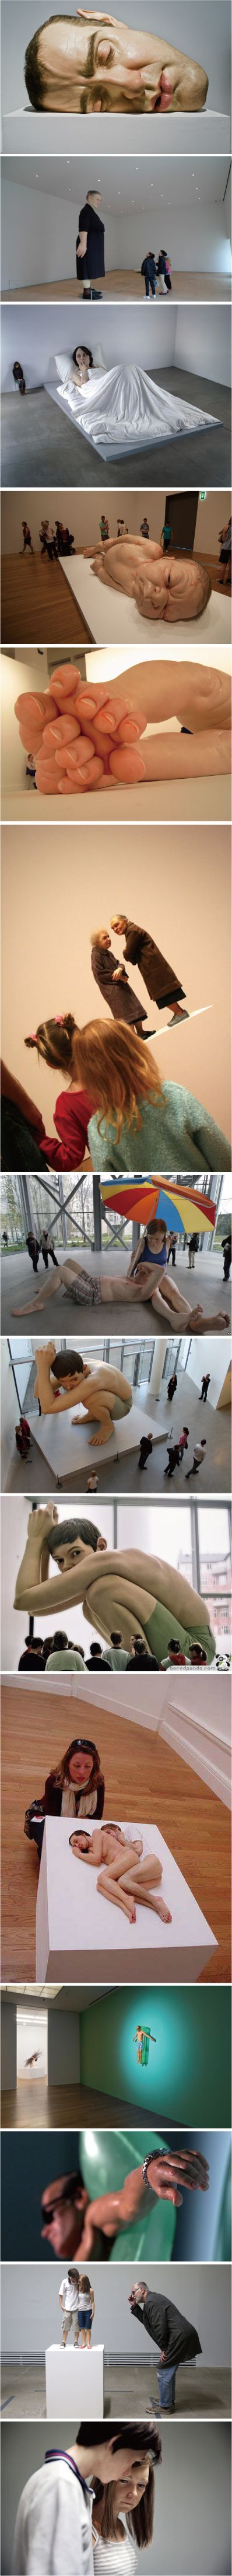 Amazing sculpture, Ron Mueck. I would love to see his work